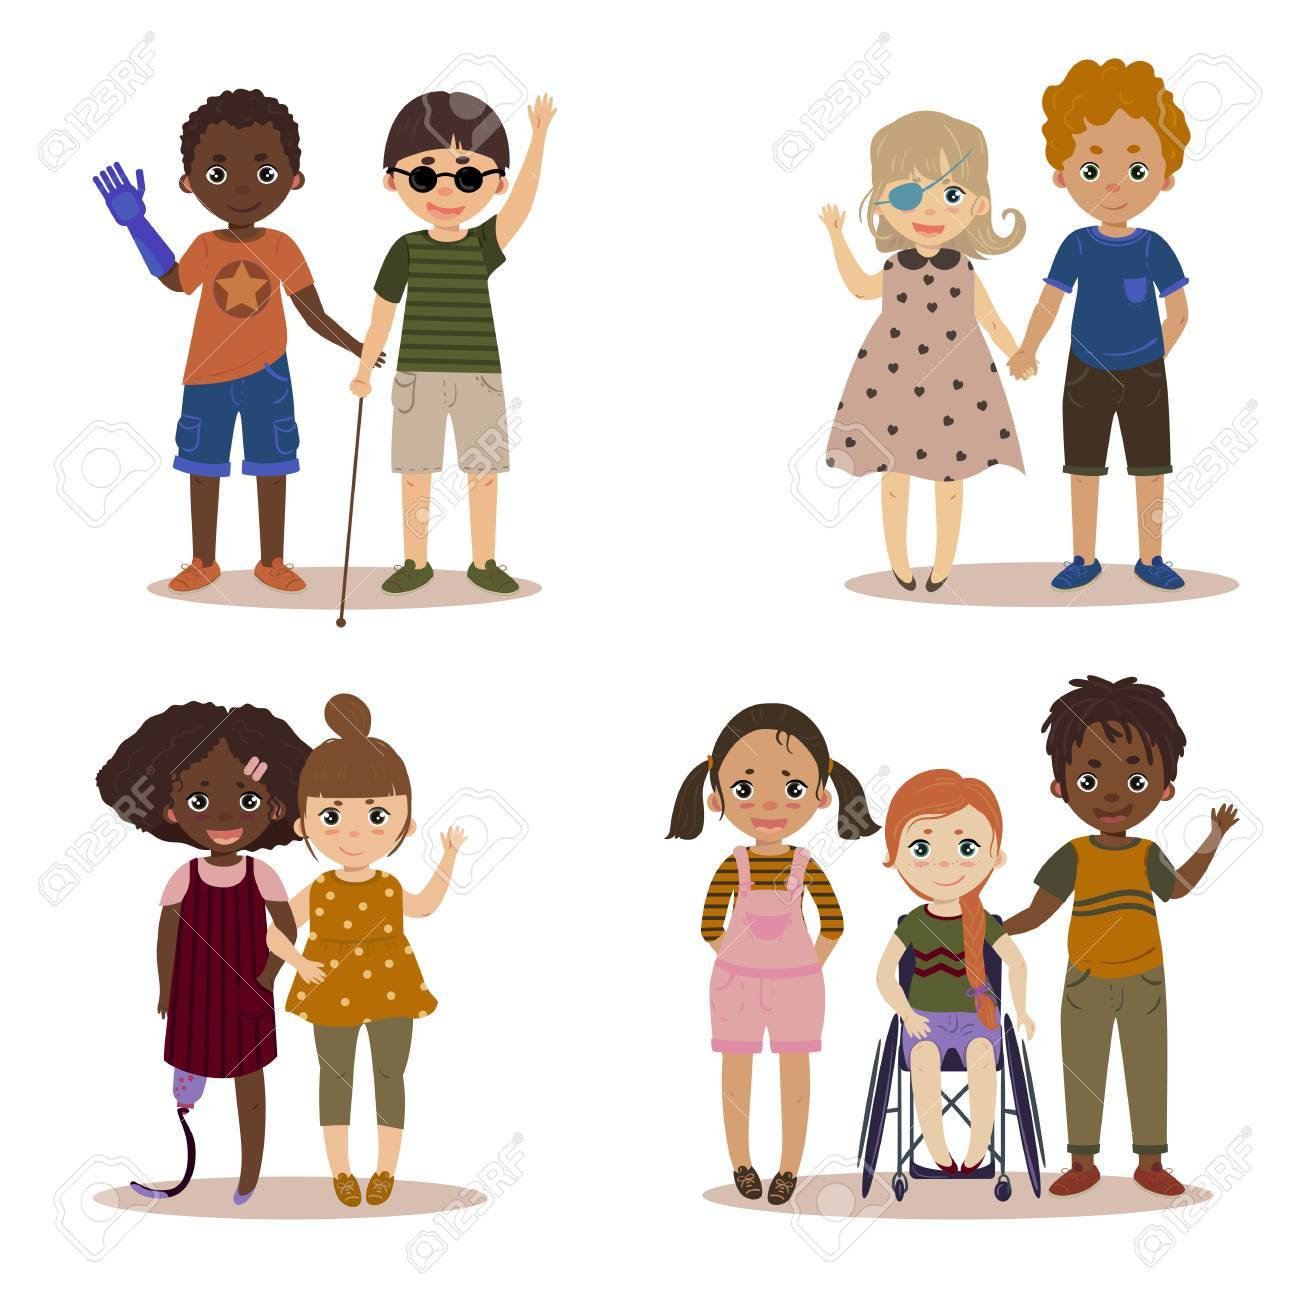 Disabled children with friends. - 89133165